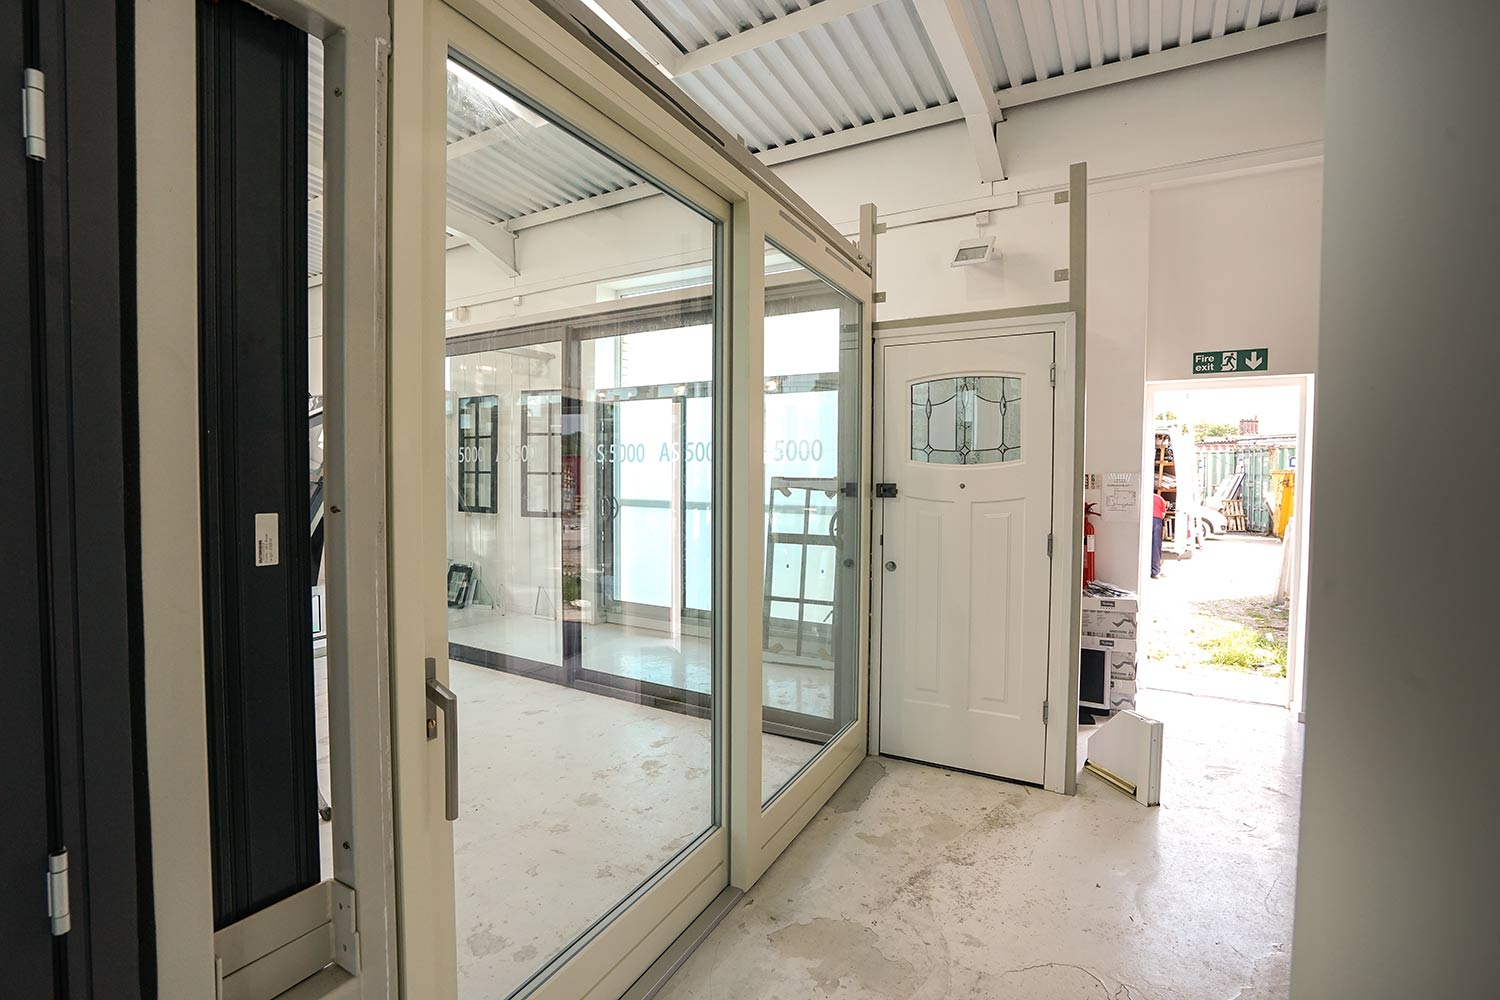 Internal view of Rationel aluminium sliding door.